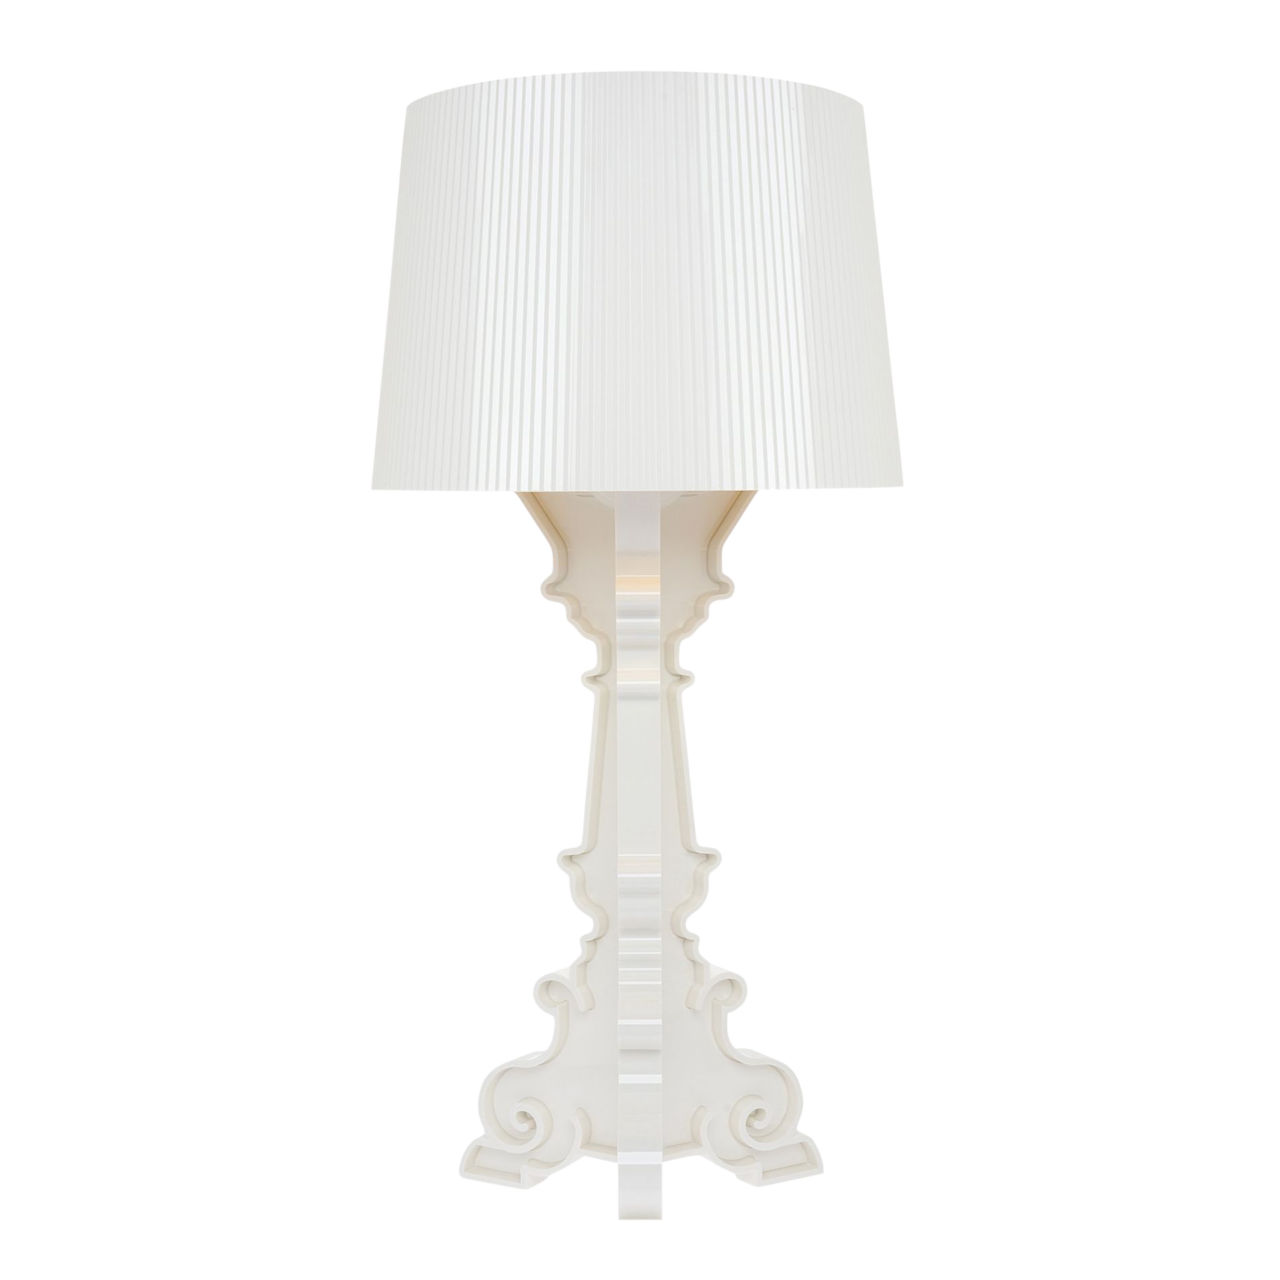 Bourgie Lamp in White by Kartell